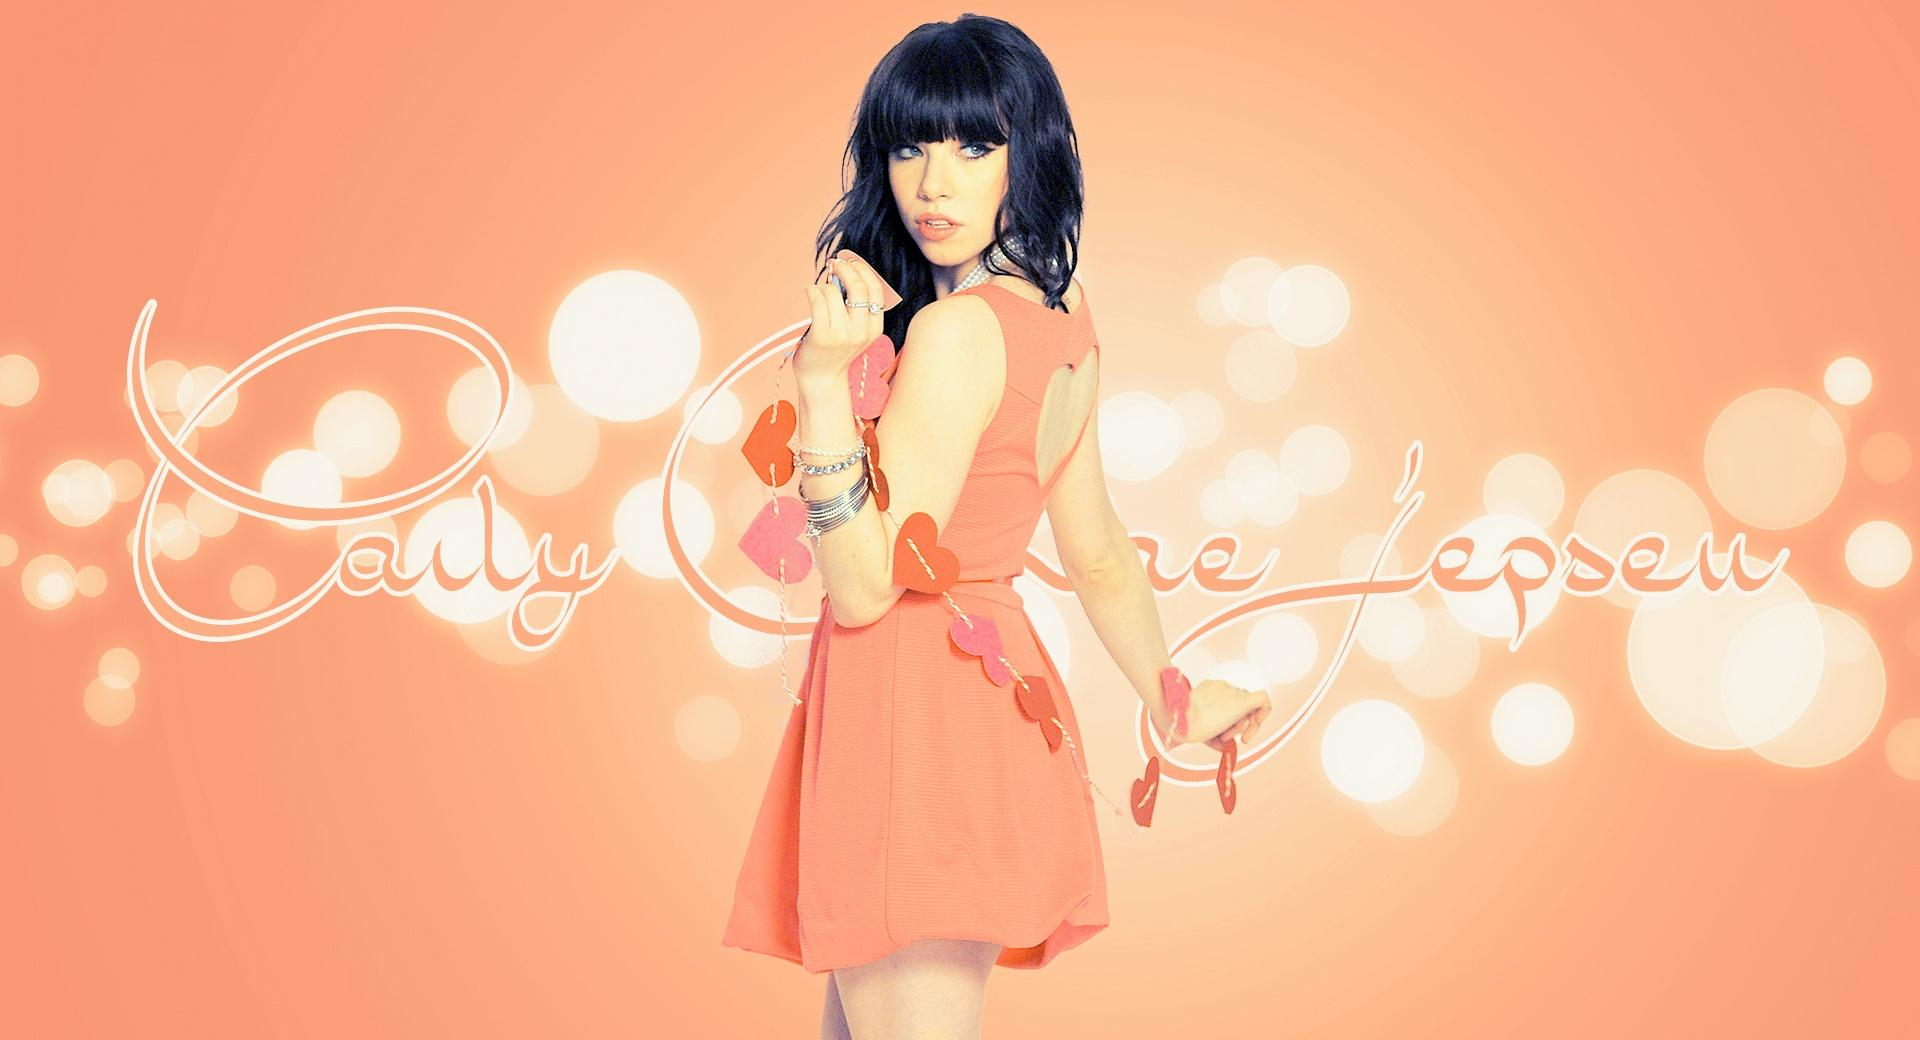 Carly Rae Jepsen Love wallpapers HD quality